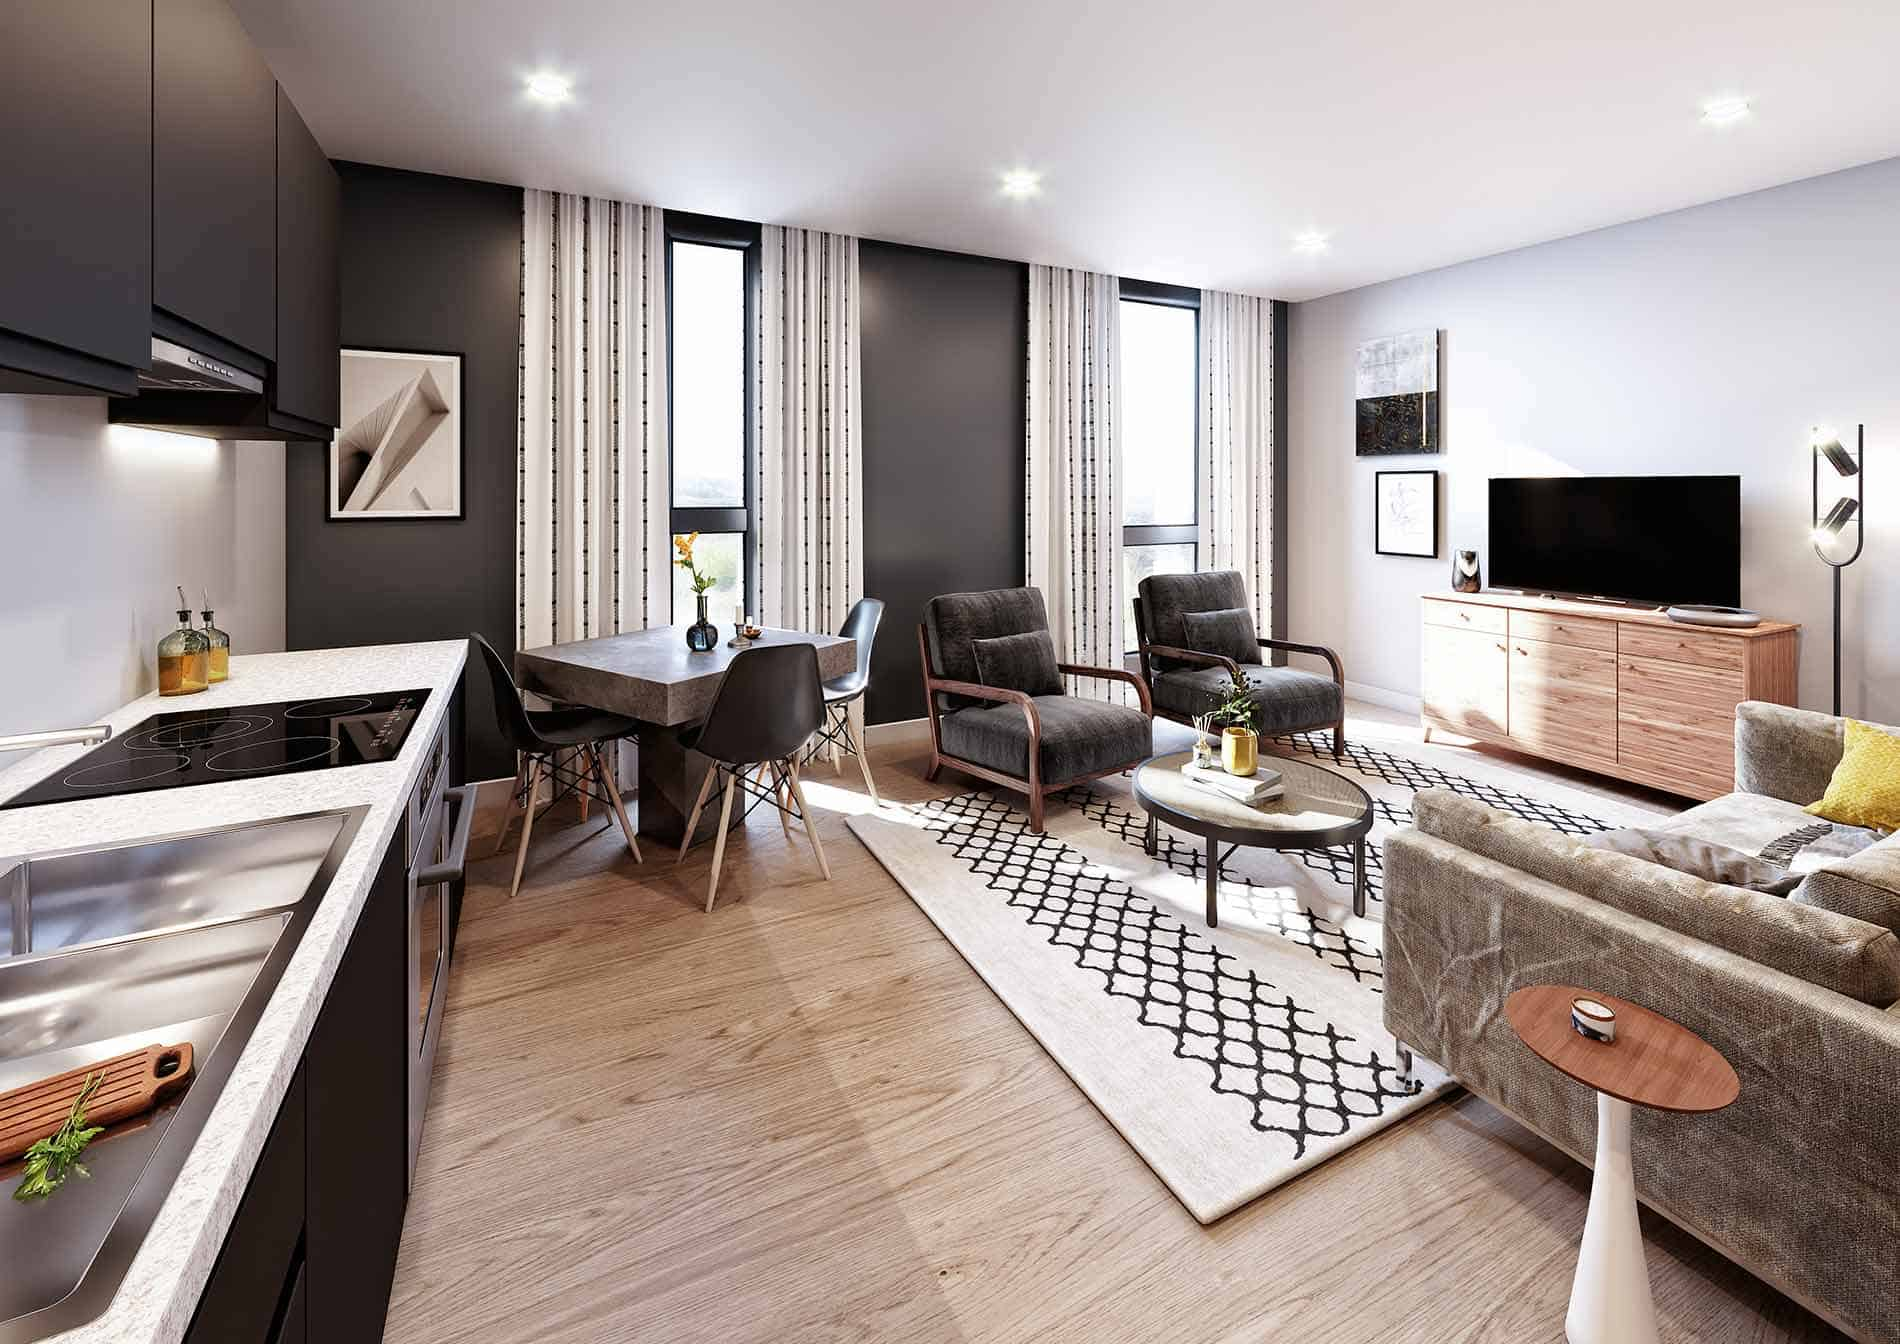 Coates House Interior Commercial to Residential Property Conversion Apartment